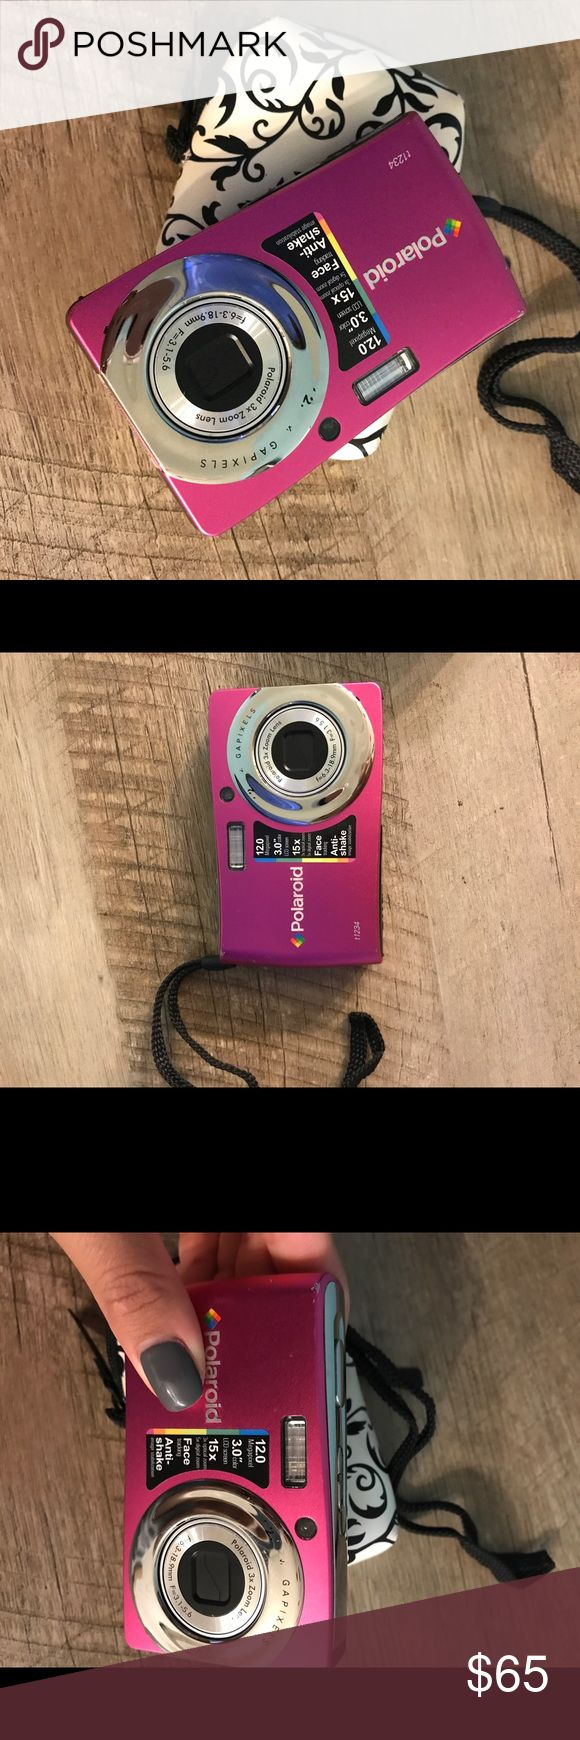 Polaroid camera hot pink 12 mega pixel, polaroid digital camera. Comes with rechargeable battery, i lost the charger port though. Also includes camera case. Some wear but works perfectly! Just don't need anymore polaroid Other